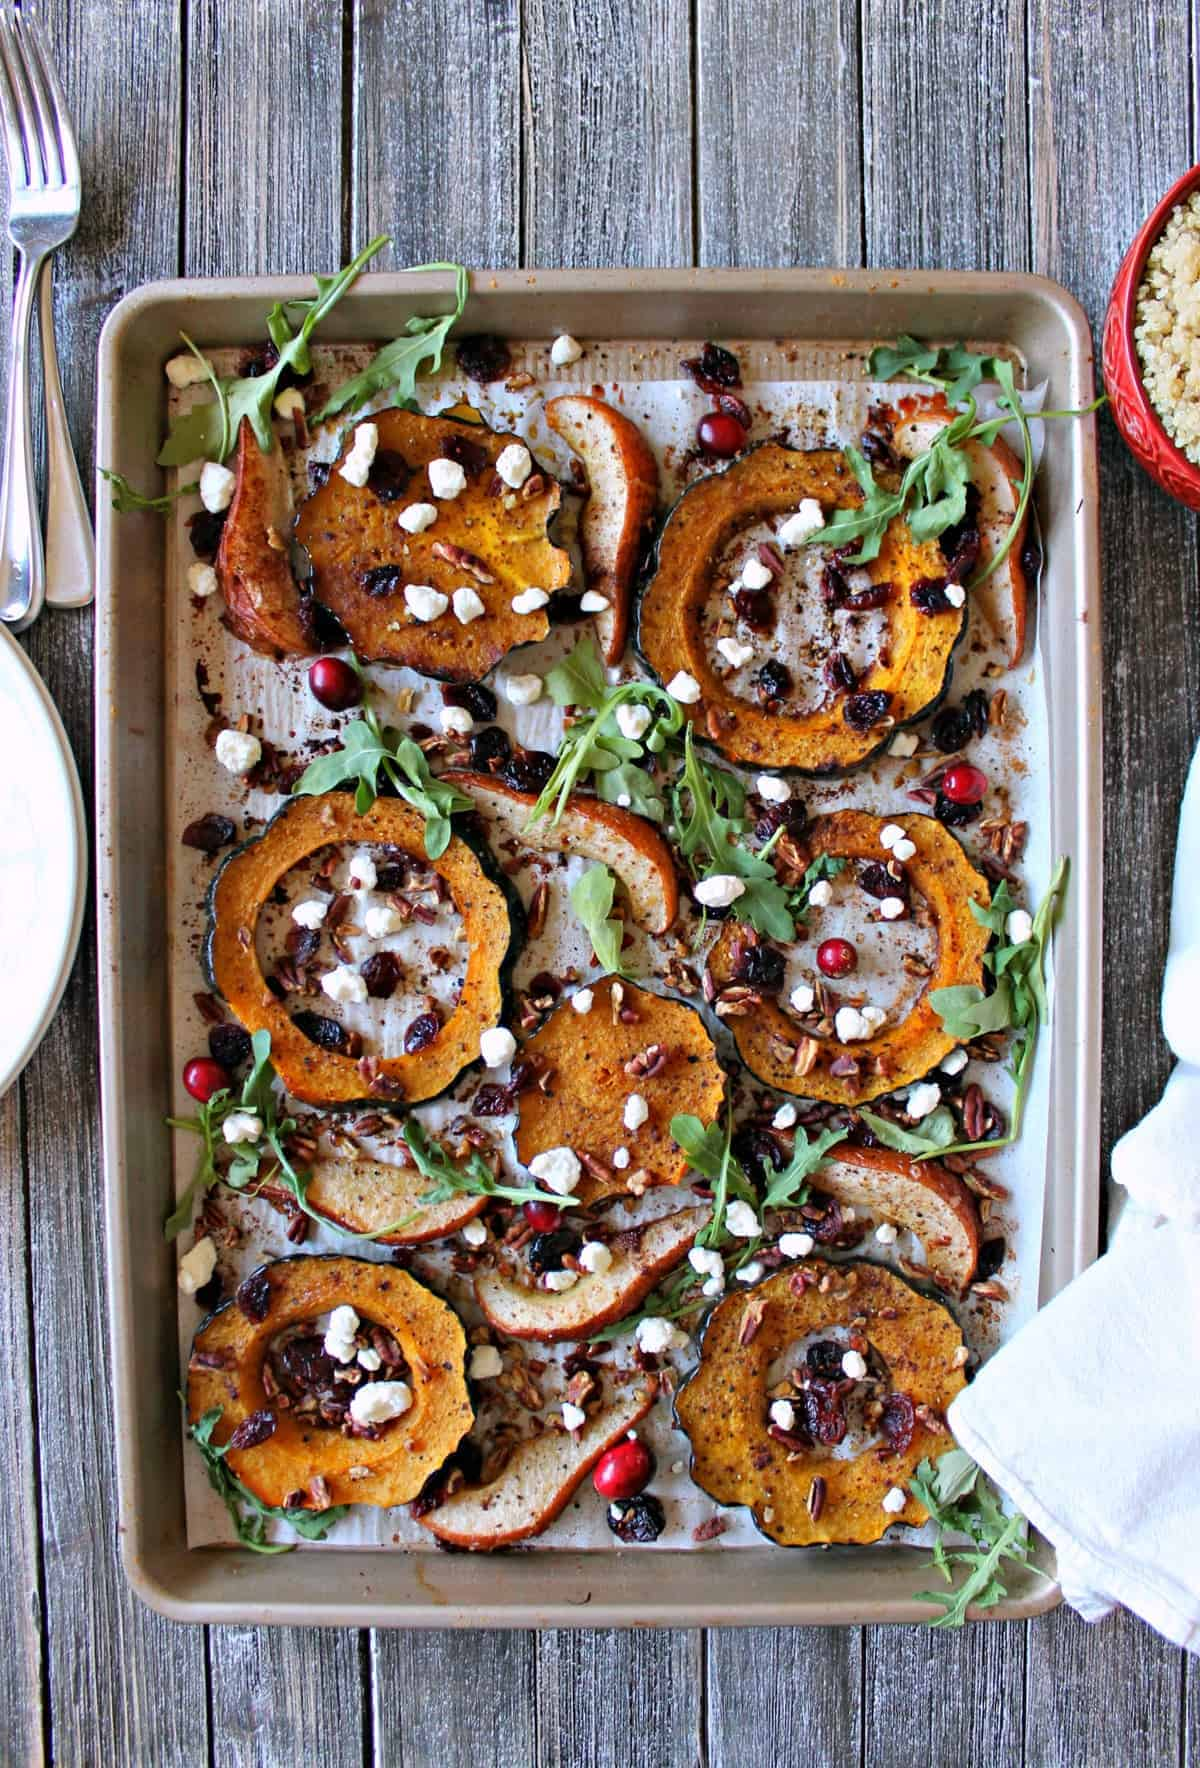 Spiced acorn squash, pears and quinoa cook simultaneously in the oven before being tossed with dried cranberries, pecans, goat cheese, and fresh arugula.